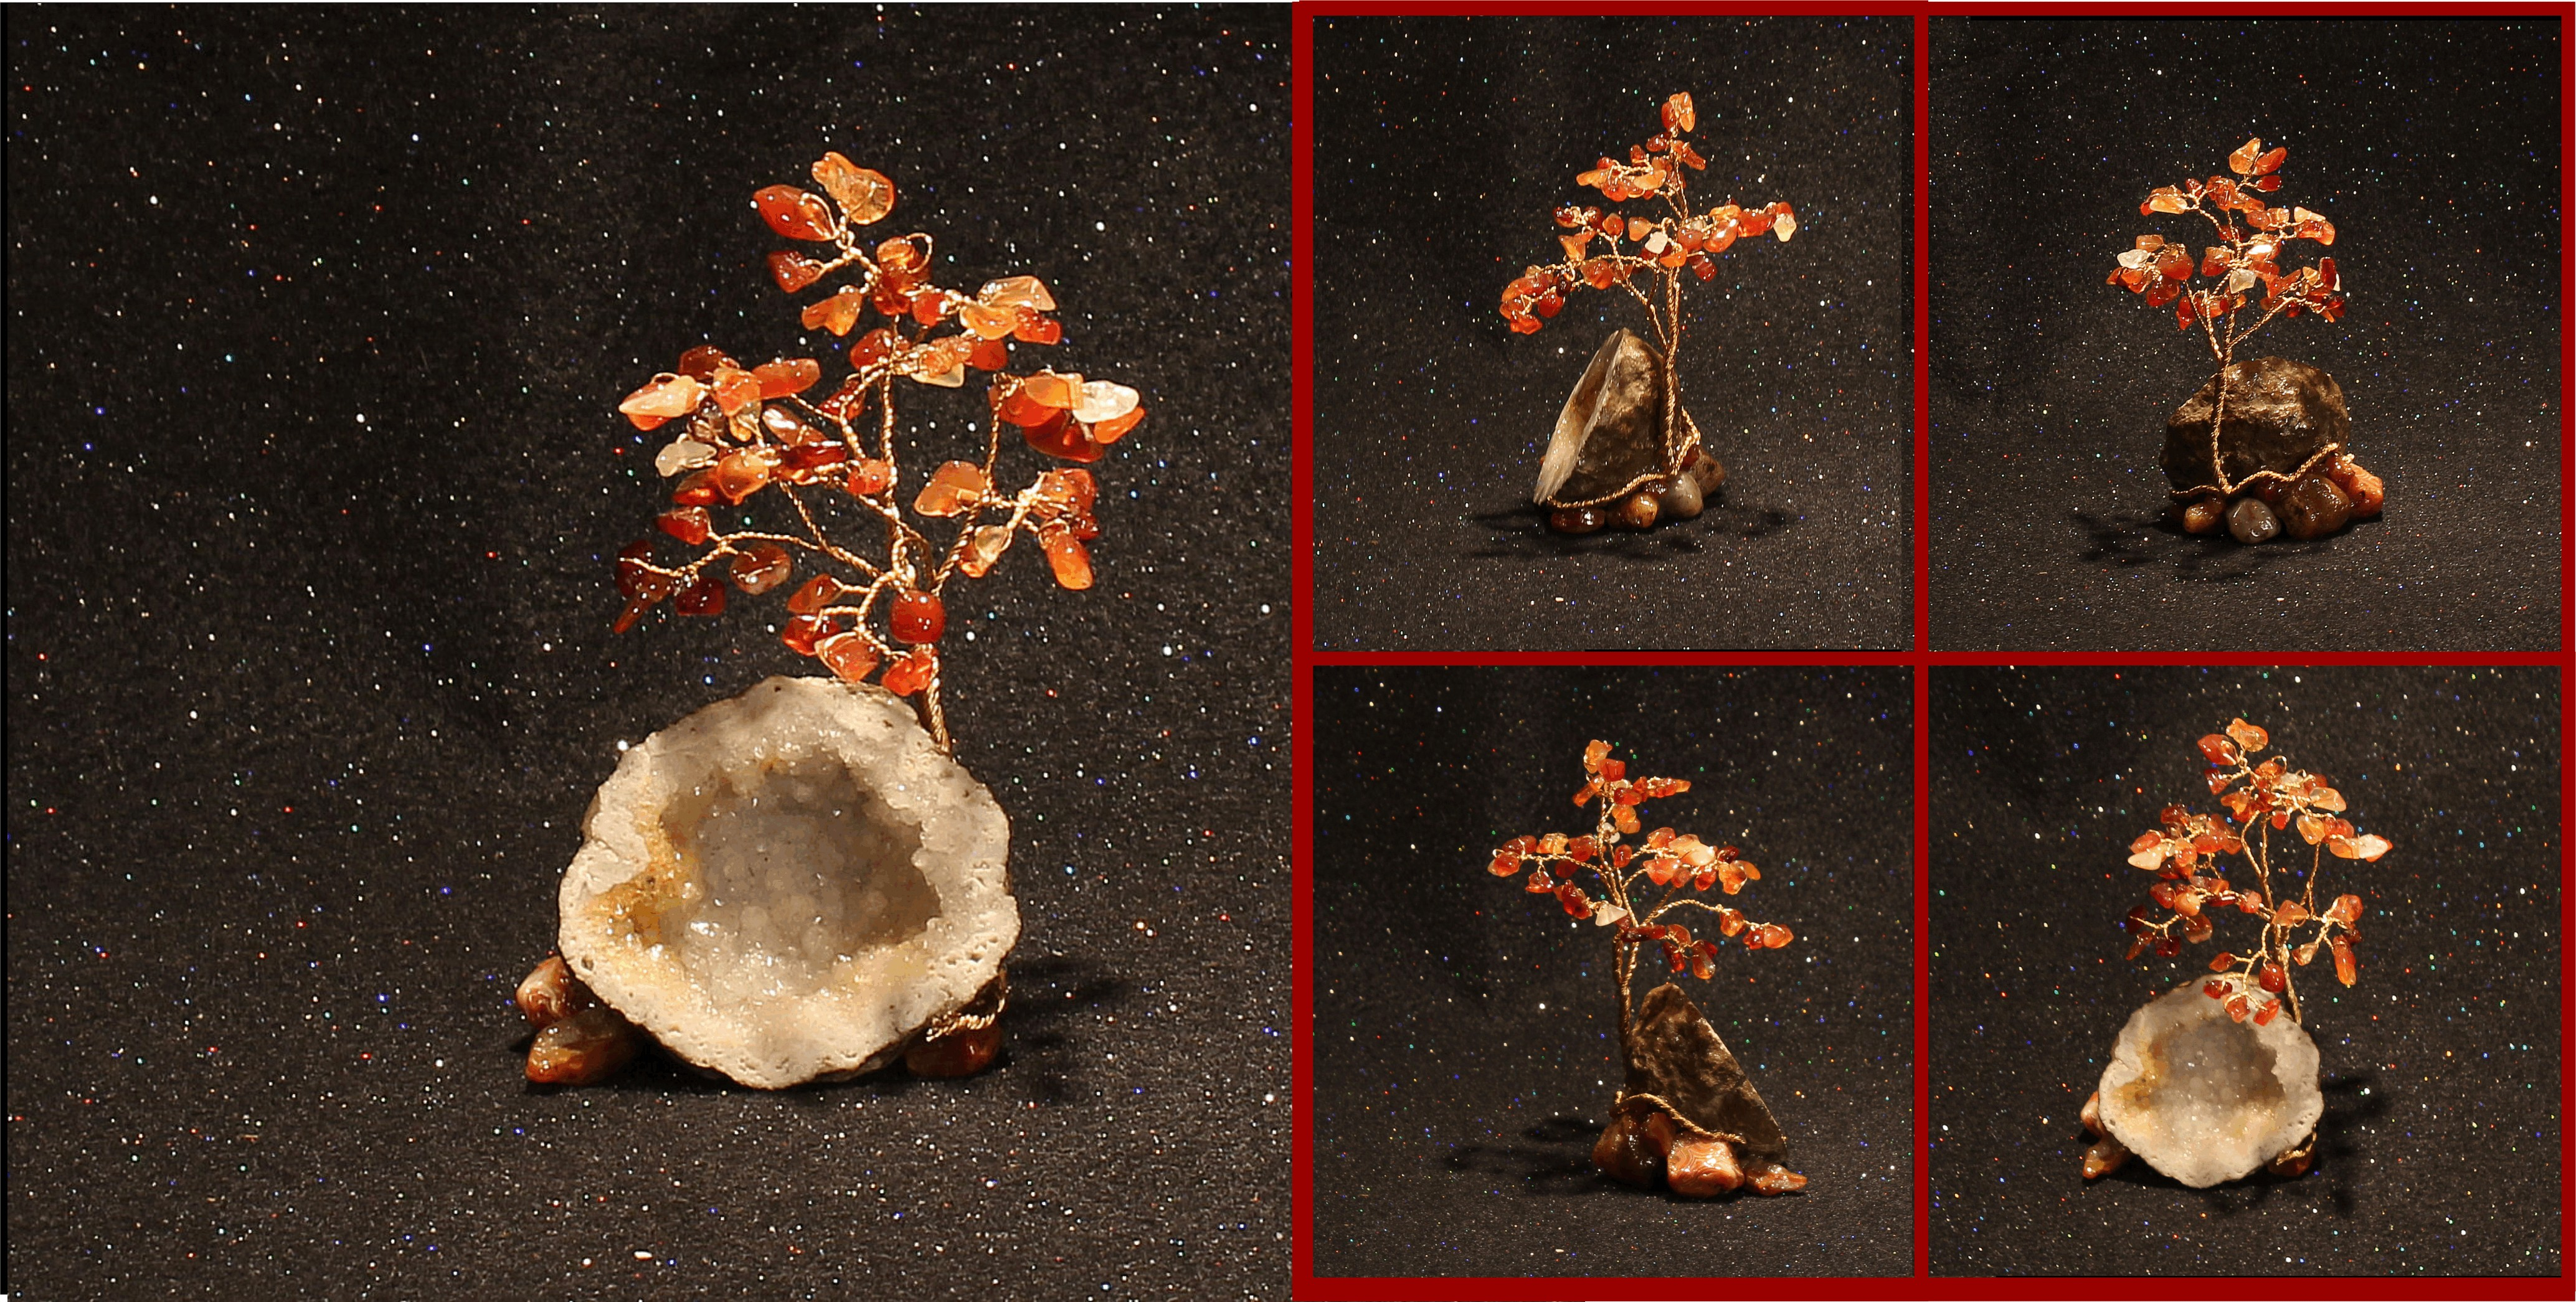 carnelian on keokuk geode 1